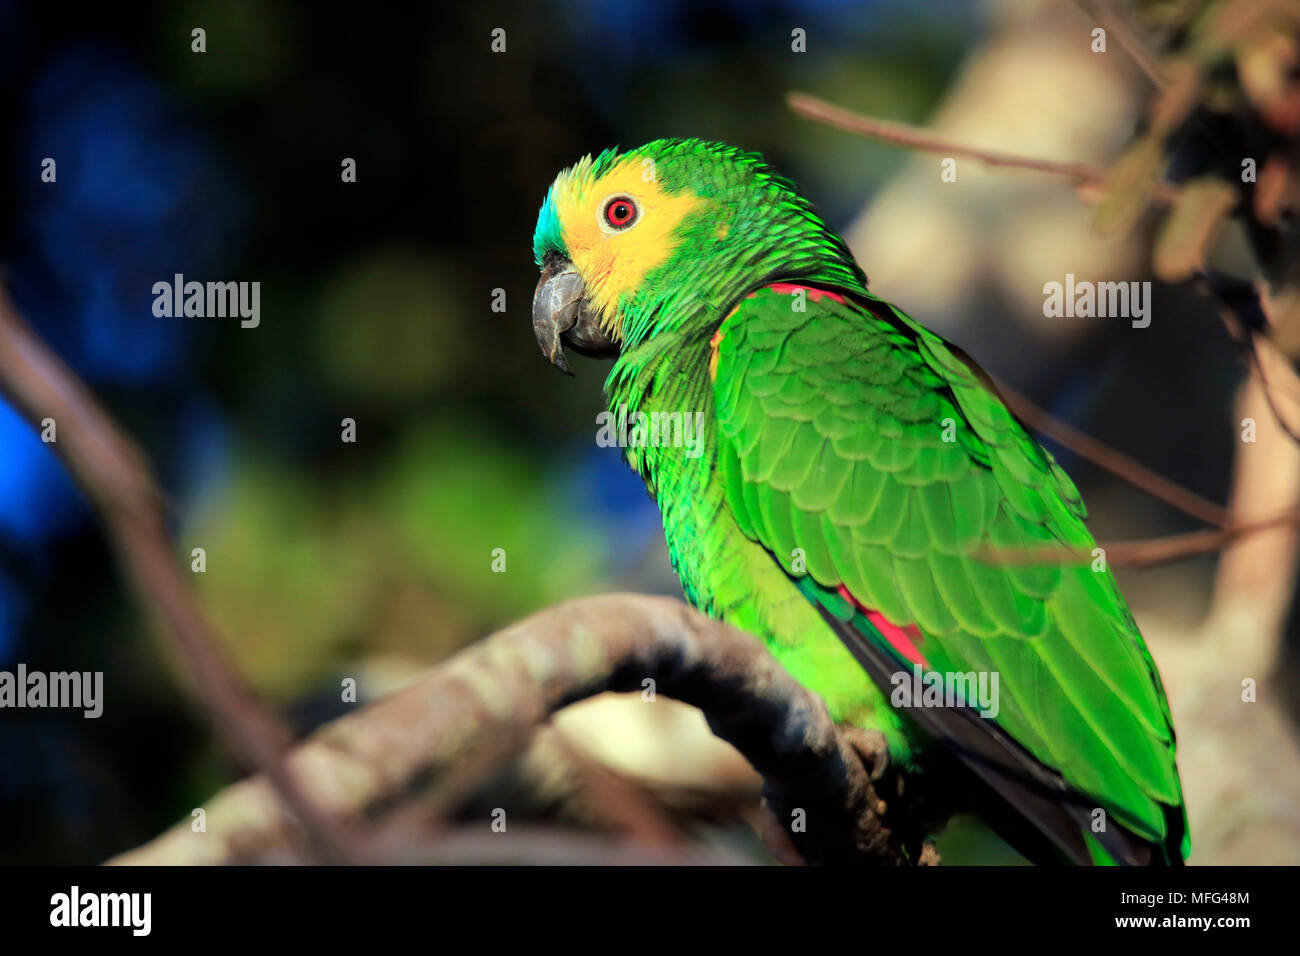 Turquoise-fronted Amazon (Amazona aestiva, aka Turquoise-fronted Parrot) on a Branch. Pantanal, Brazil - Stock Image